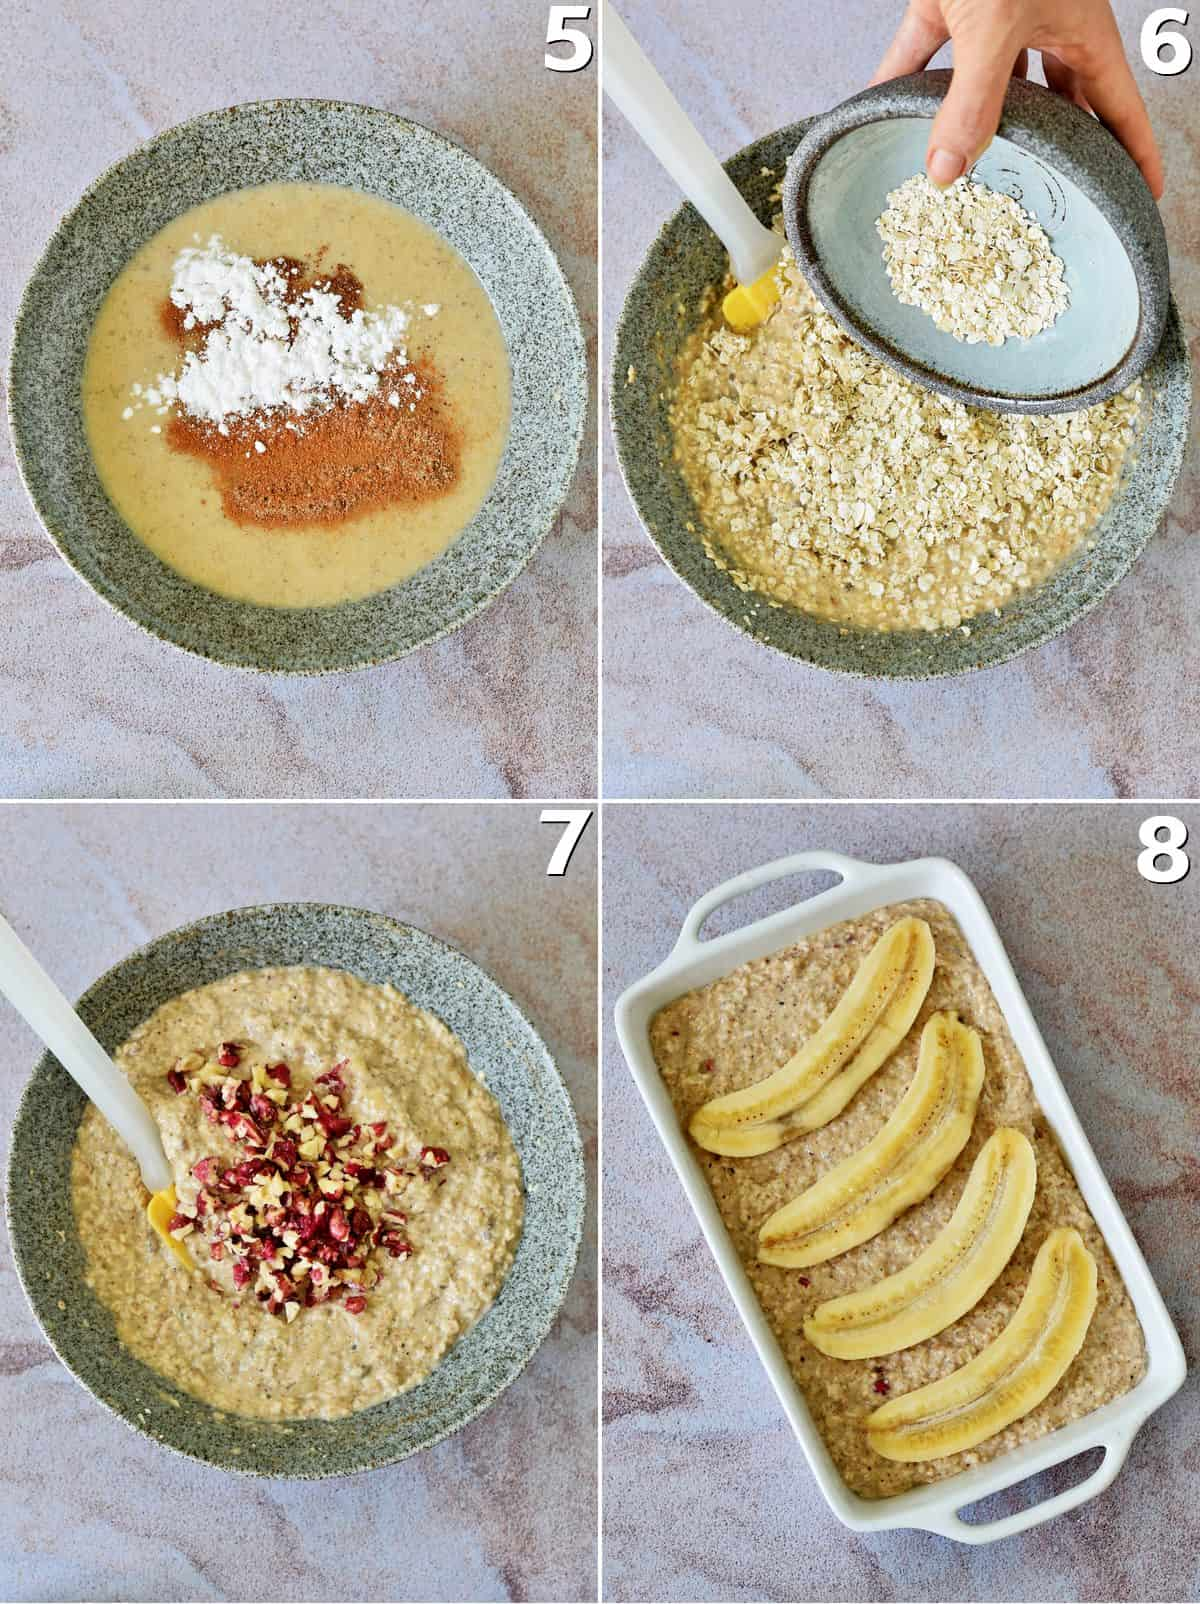 4 step-by-step photos showing how to make oatmeal casserole